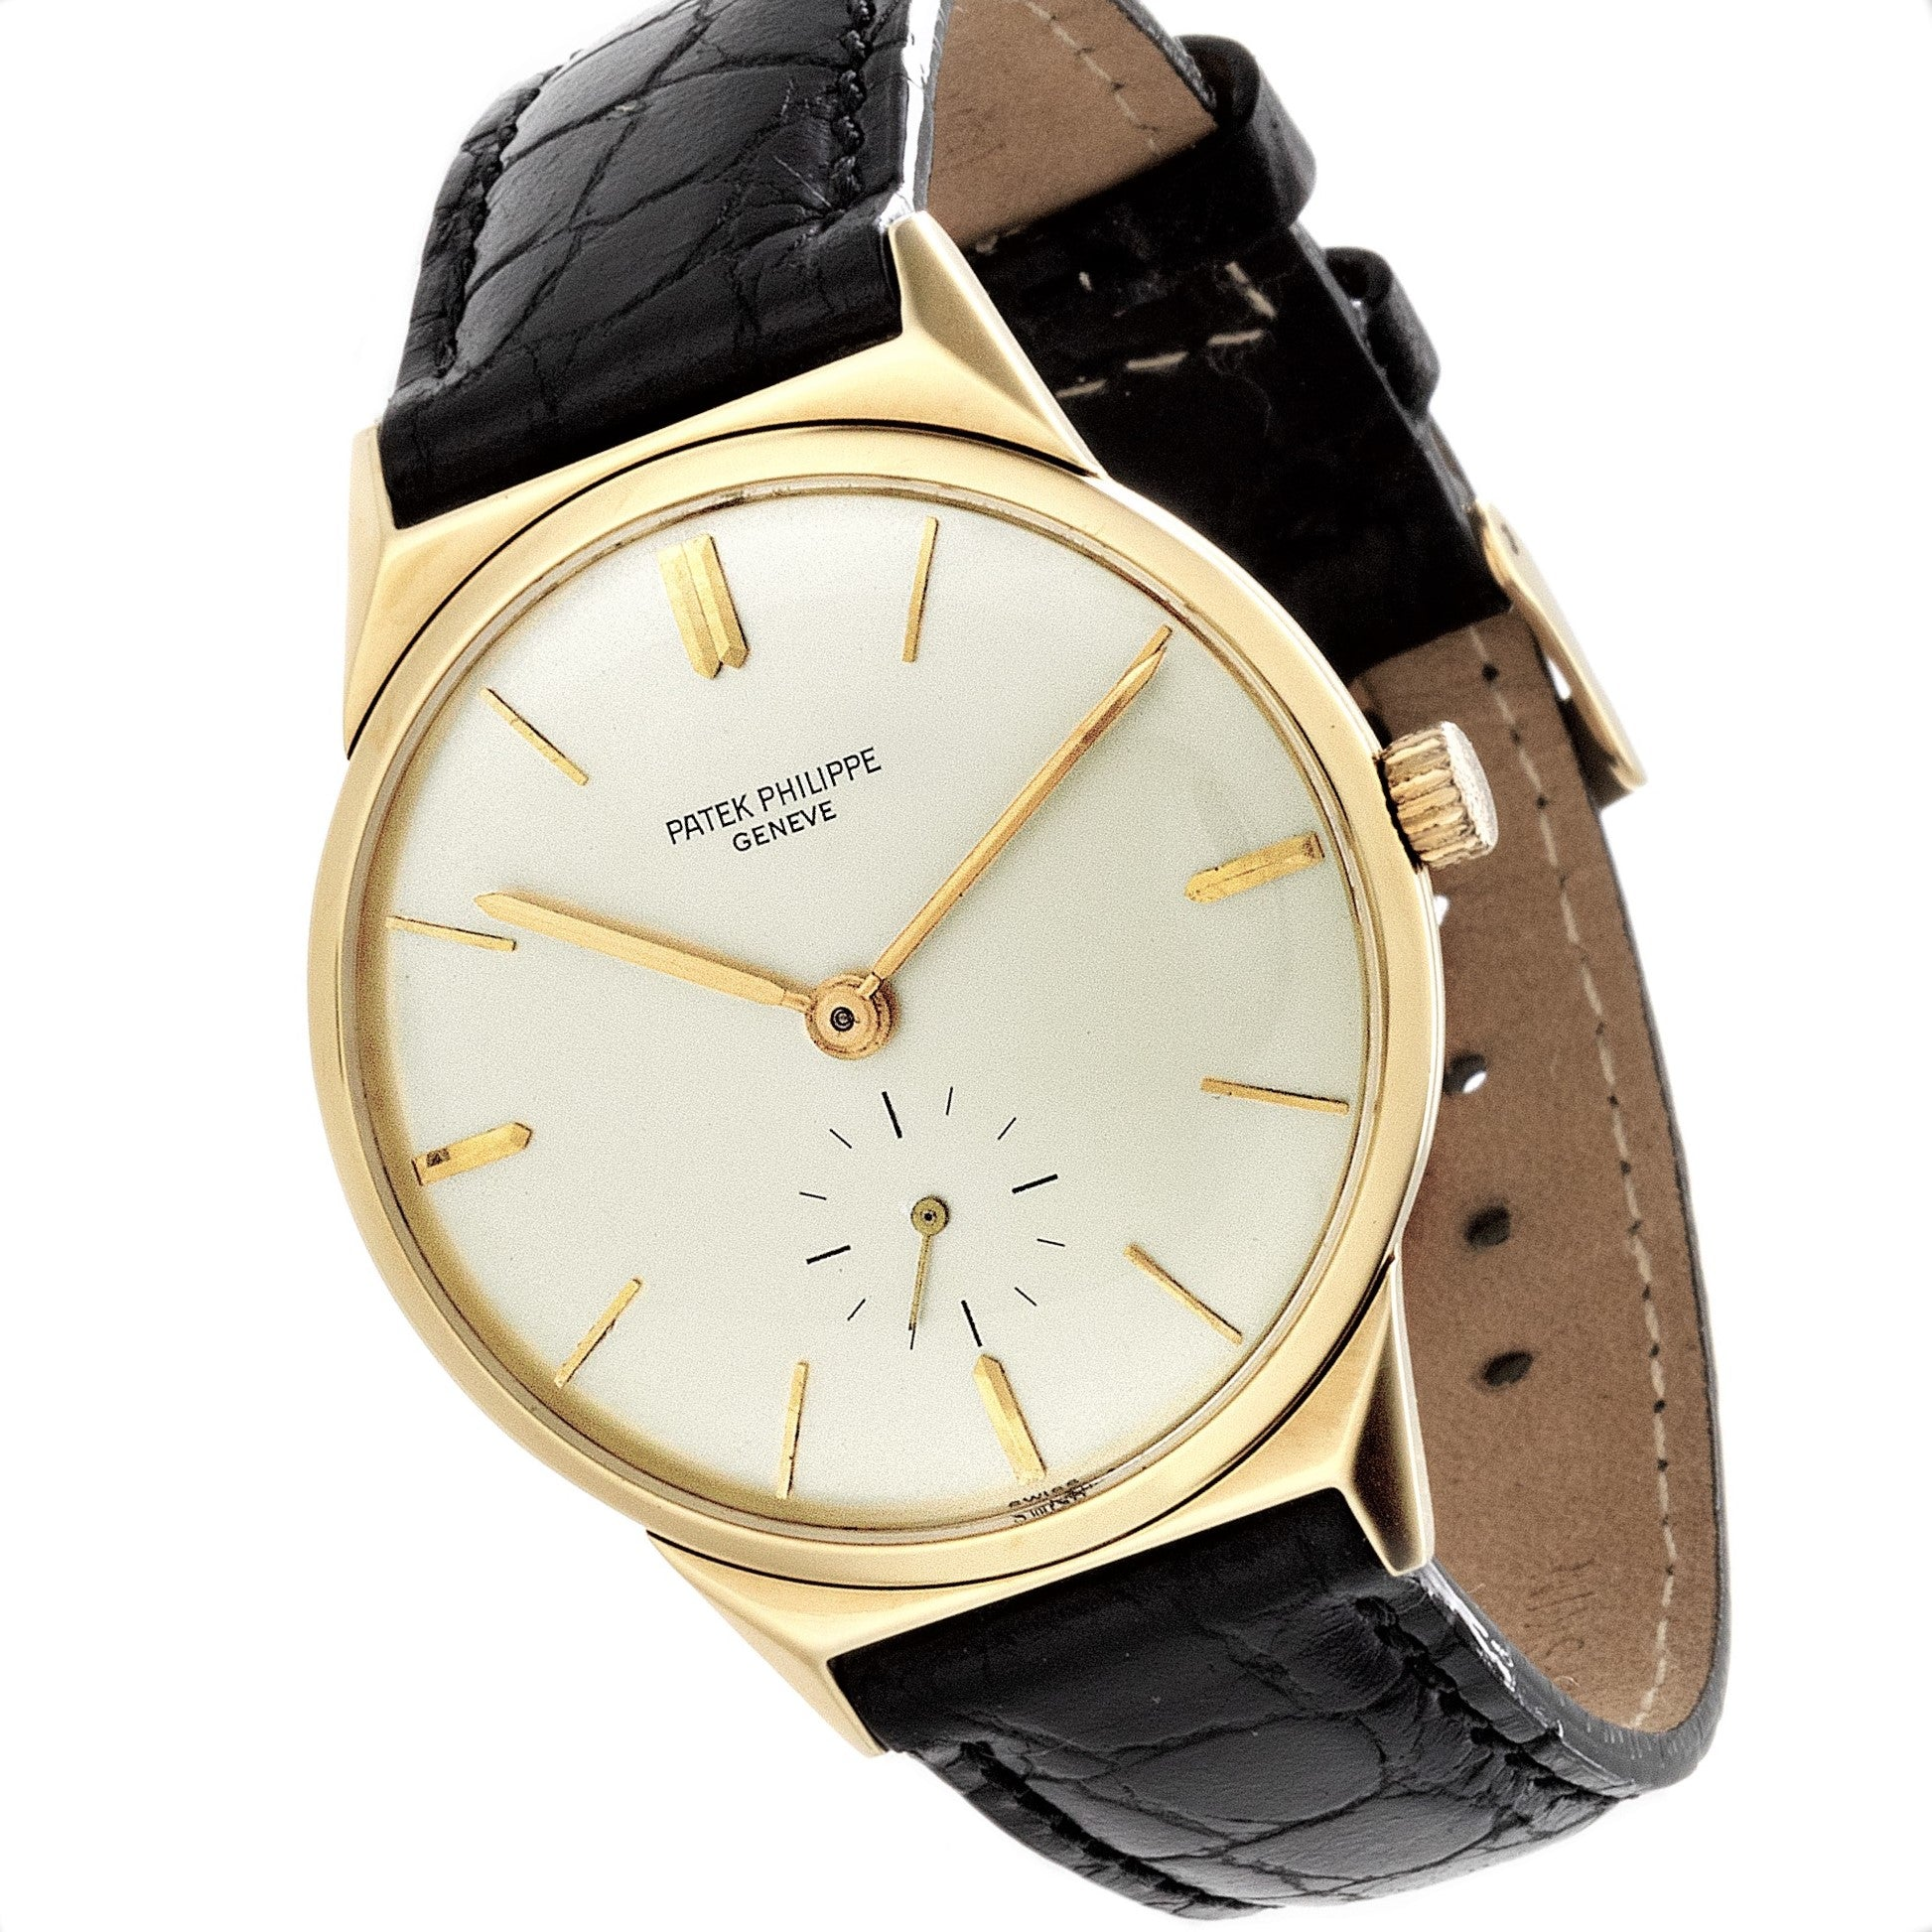 Patek Philippe 2568J Vintage Calatrava Watch 33 mm, Circa 1957